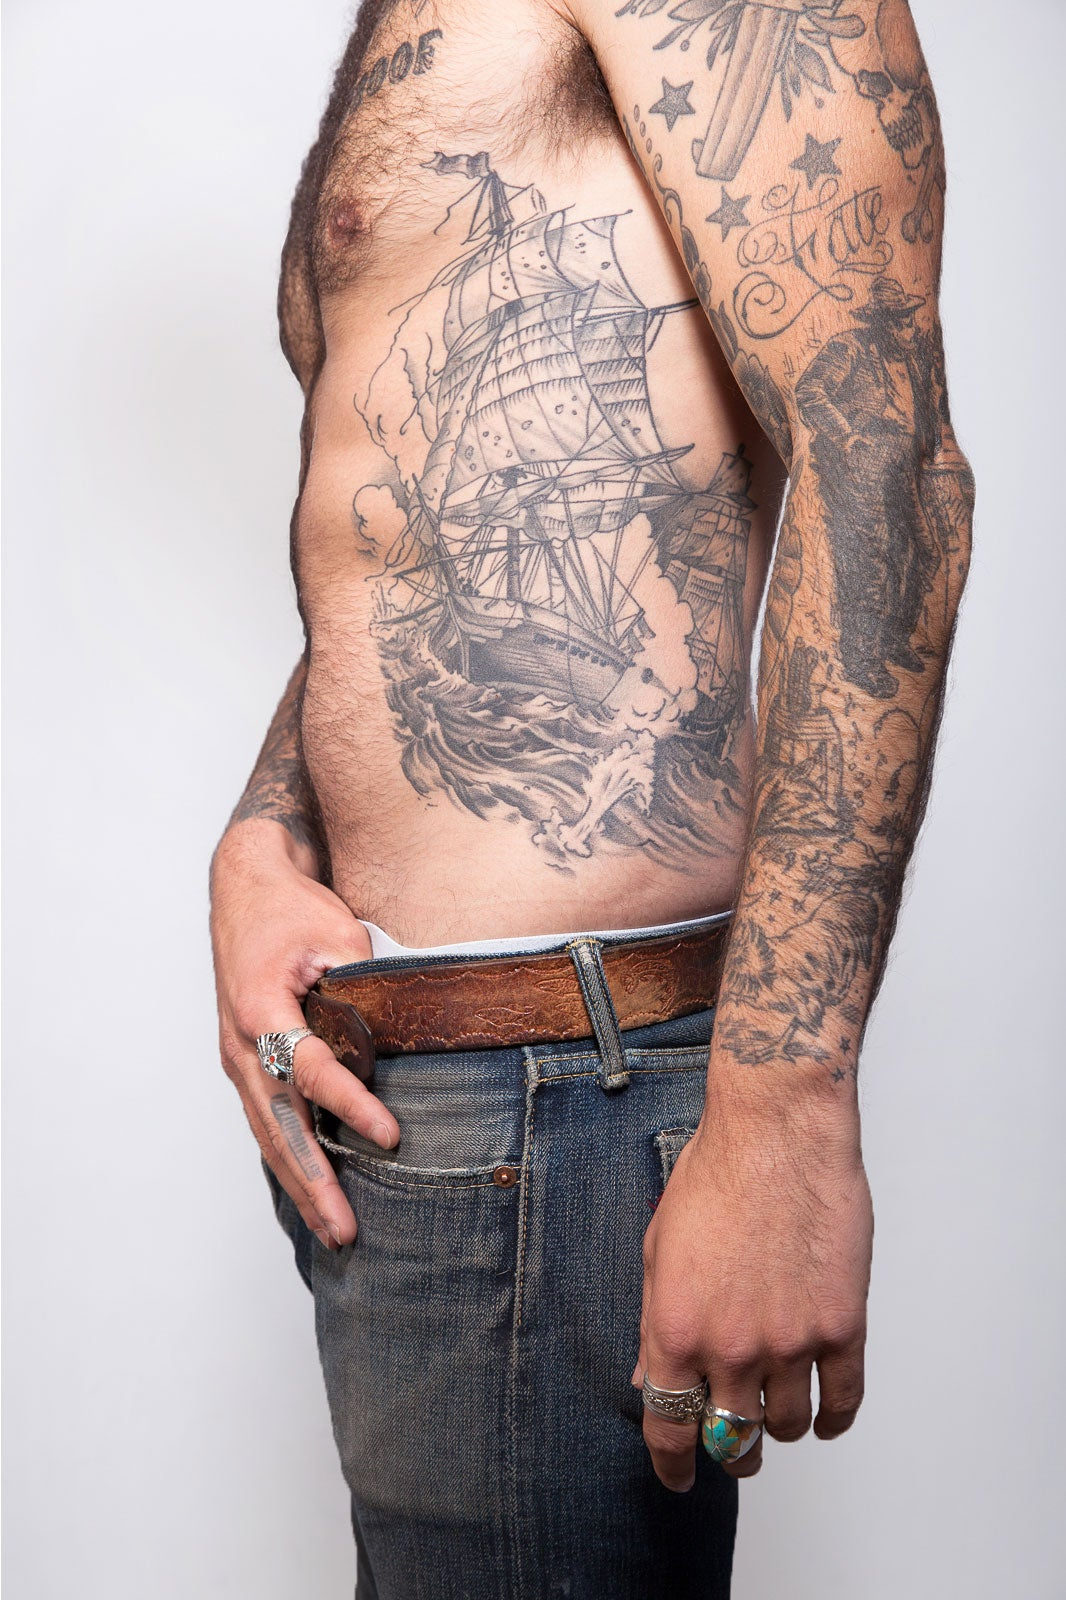 Private parts tattoo for men - Private Parts Tattoo For Men 31